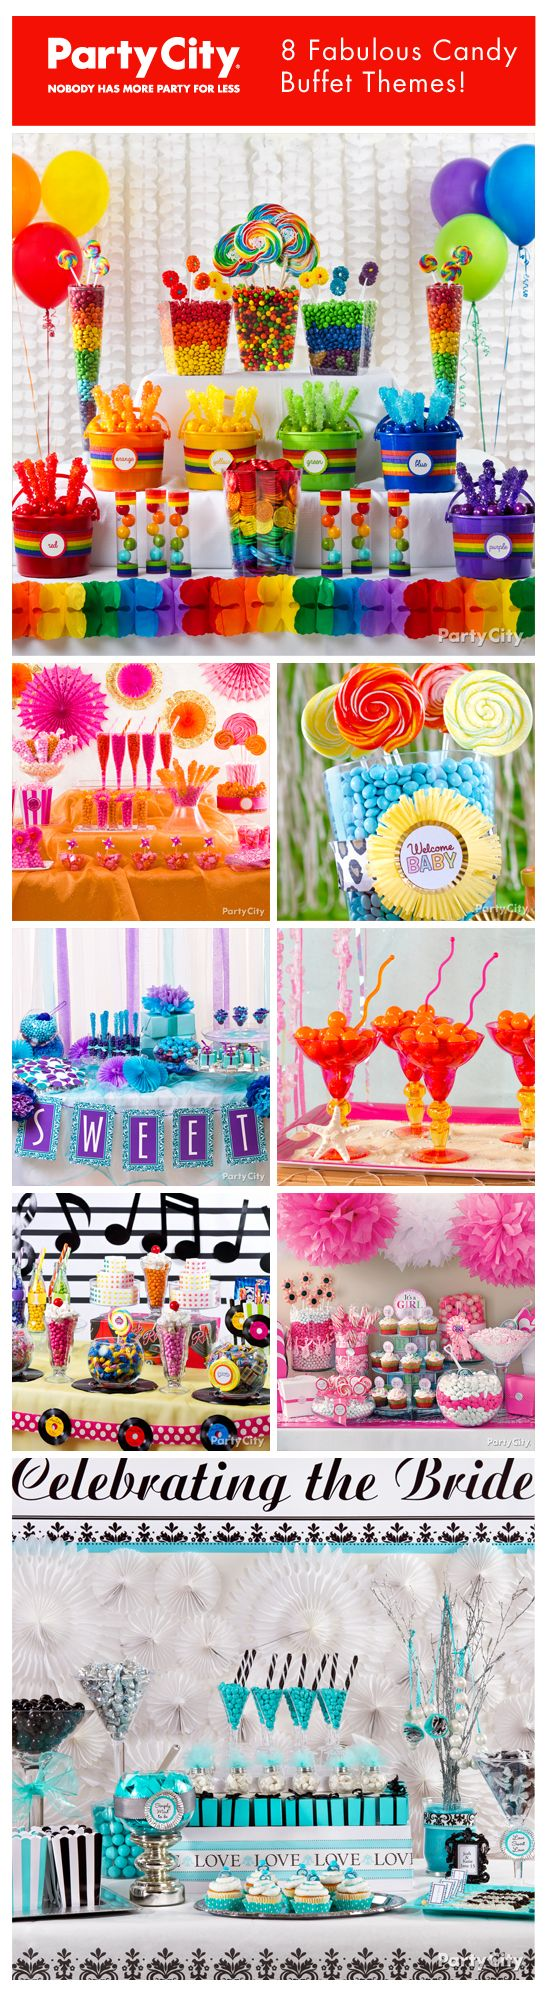 100+ candy buffet ideas for bridal shower or wedding, baby shower, birthday party, theme party, rainbow party ... SWEET! #partyfoods #partyideas #partythemes